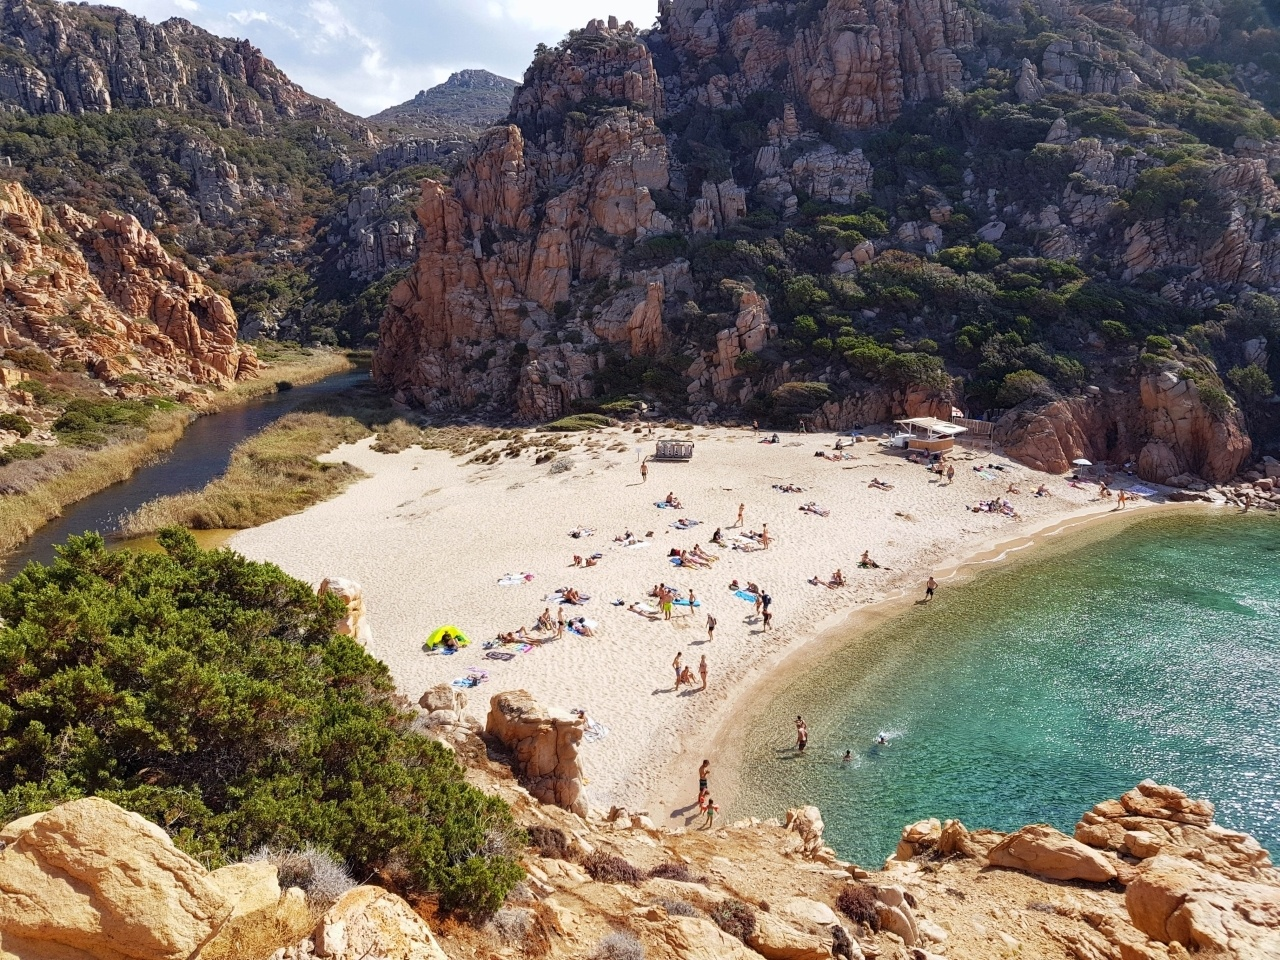 A beach with people in Sardinia.